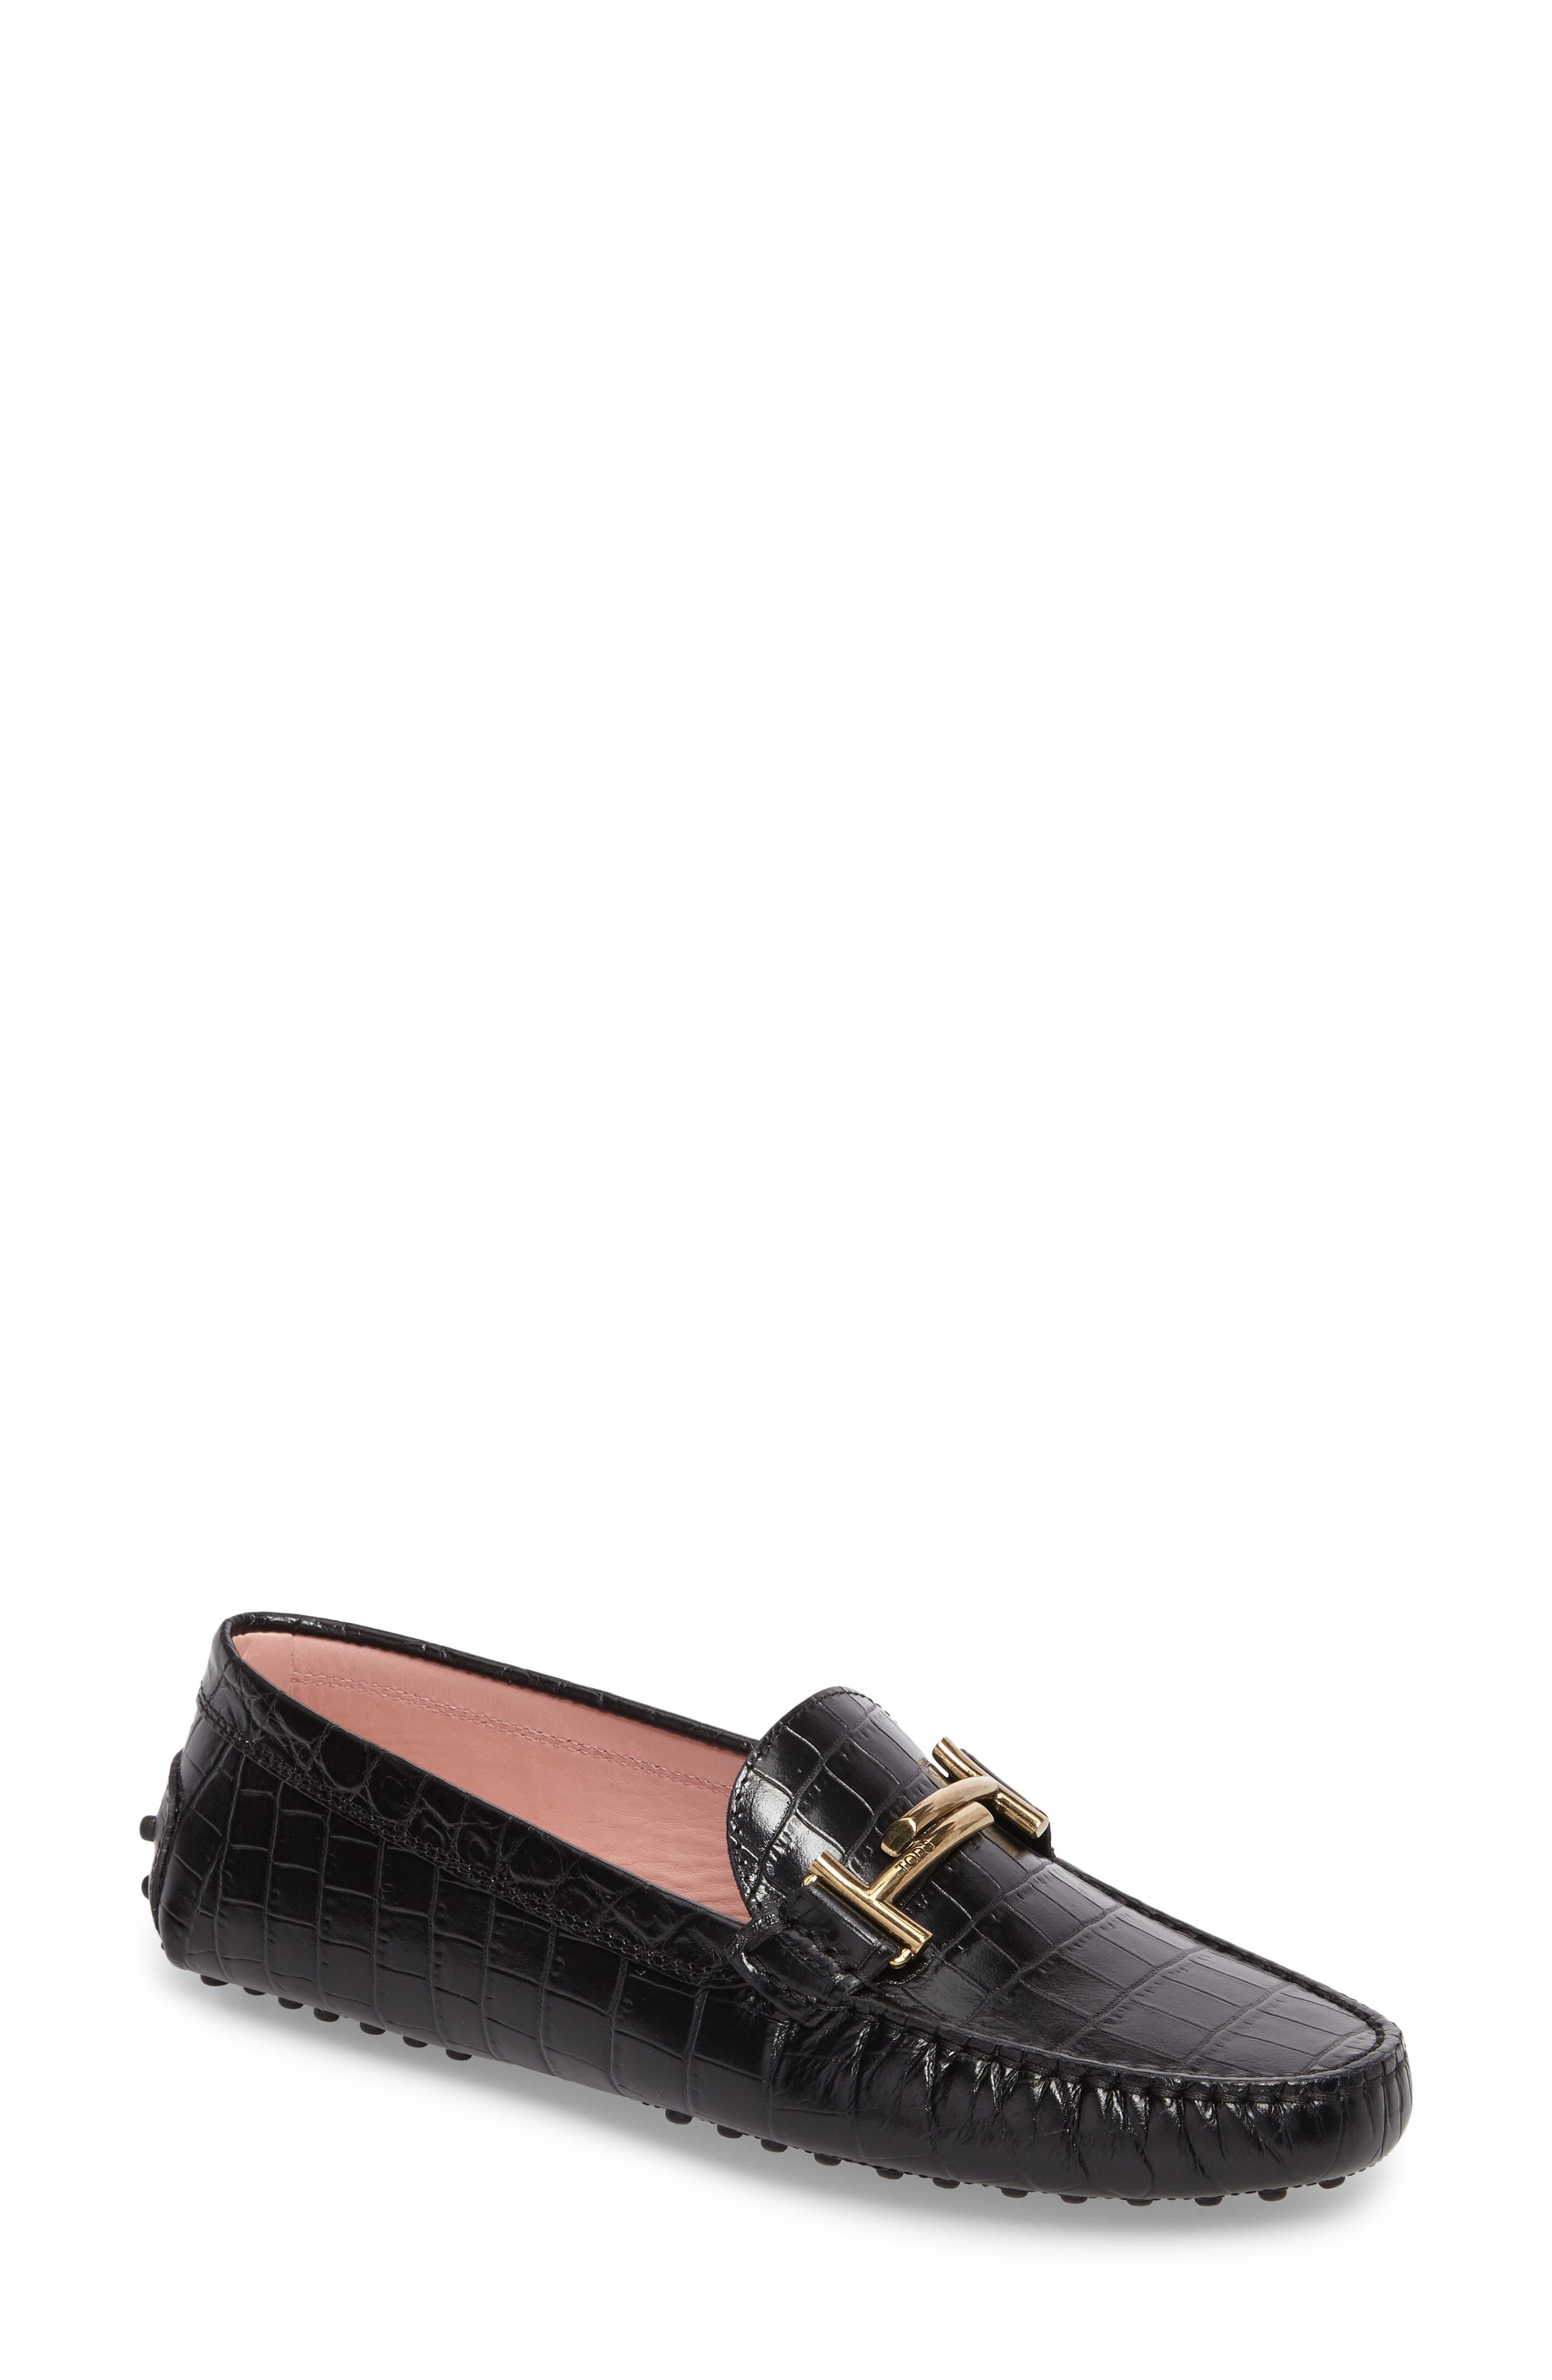 Alternate Image 1 Selected - Tod's 'Double T' Bit Loafer (Women)